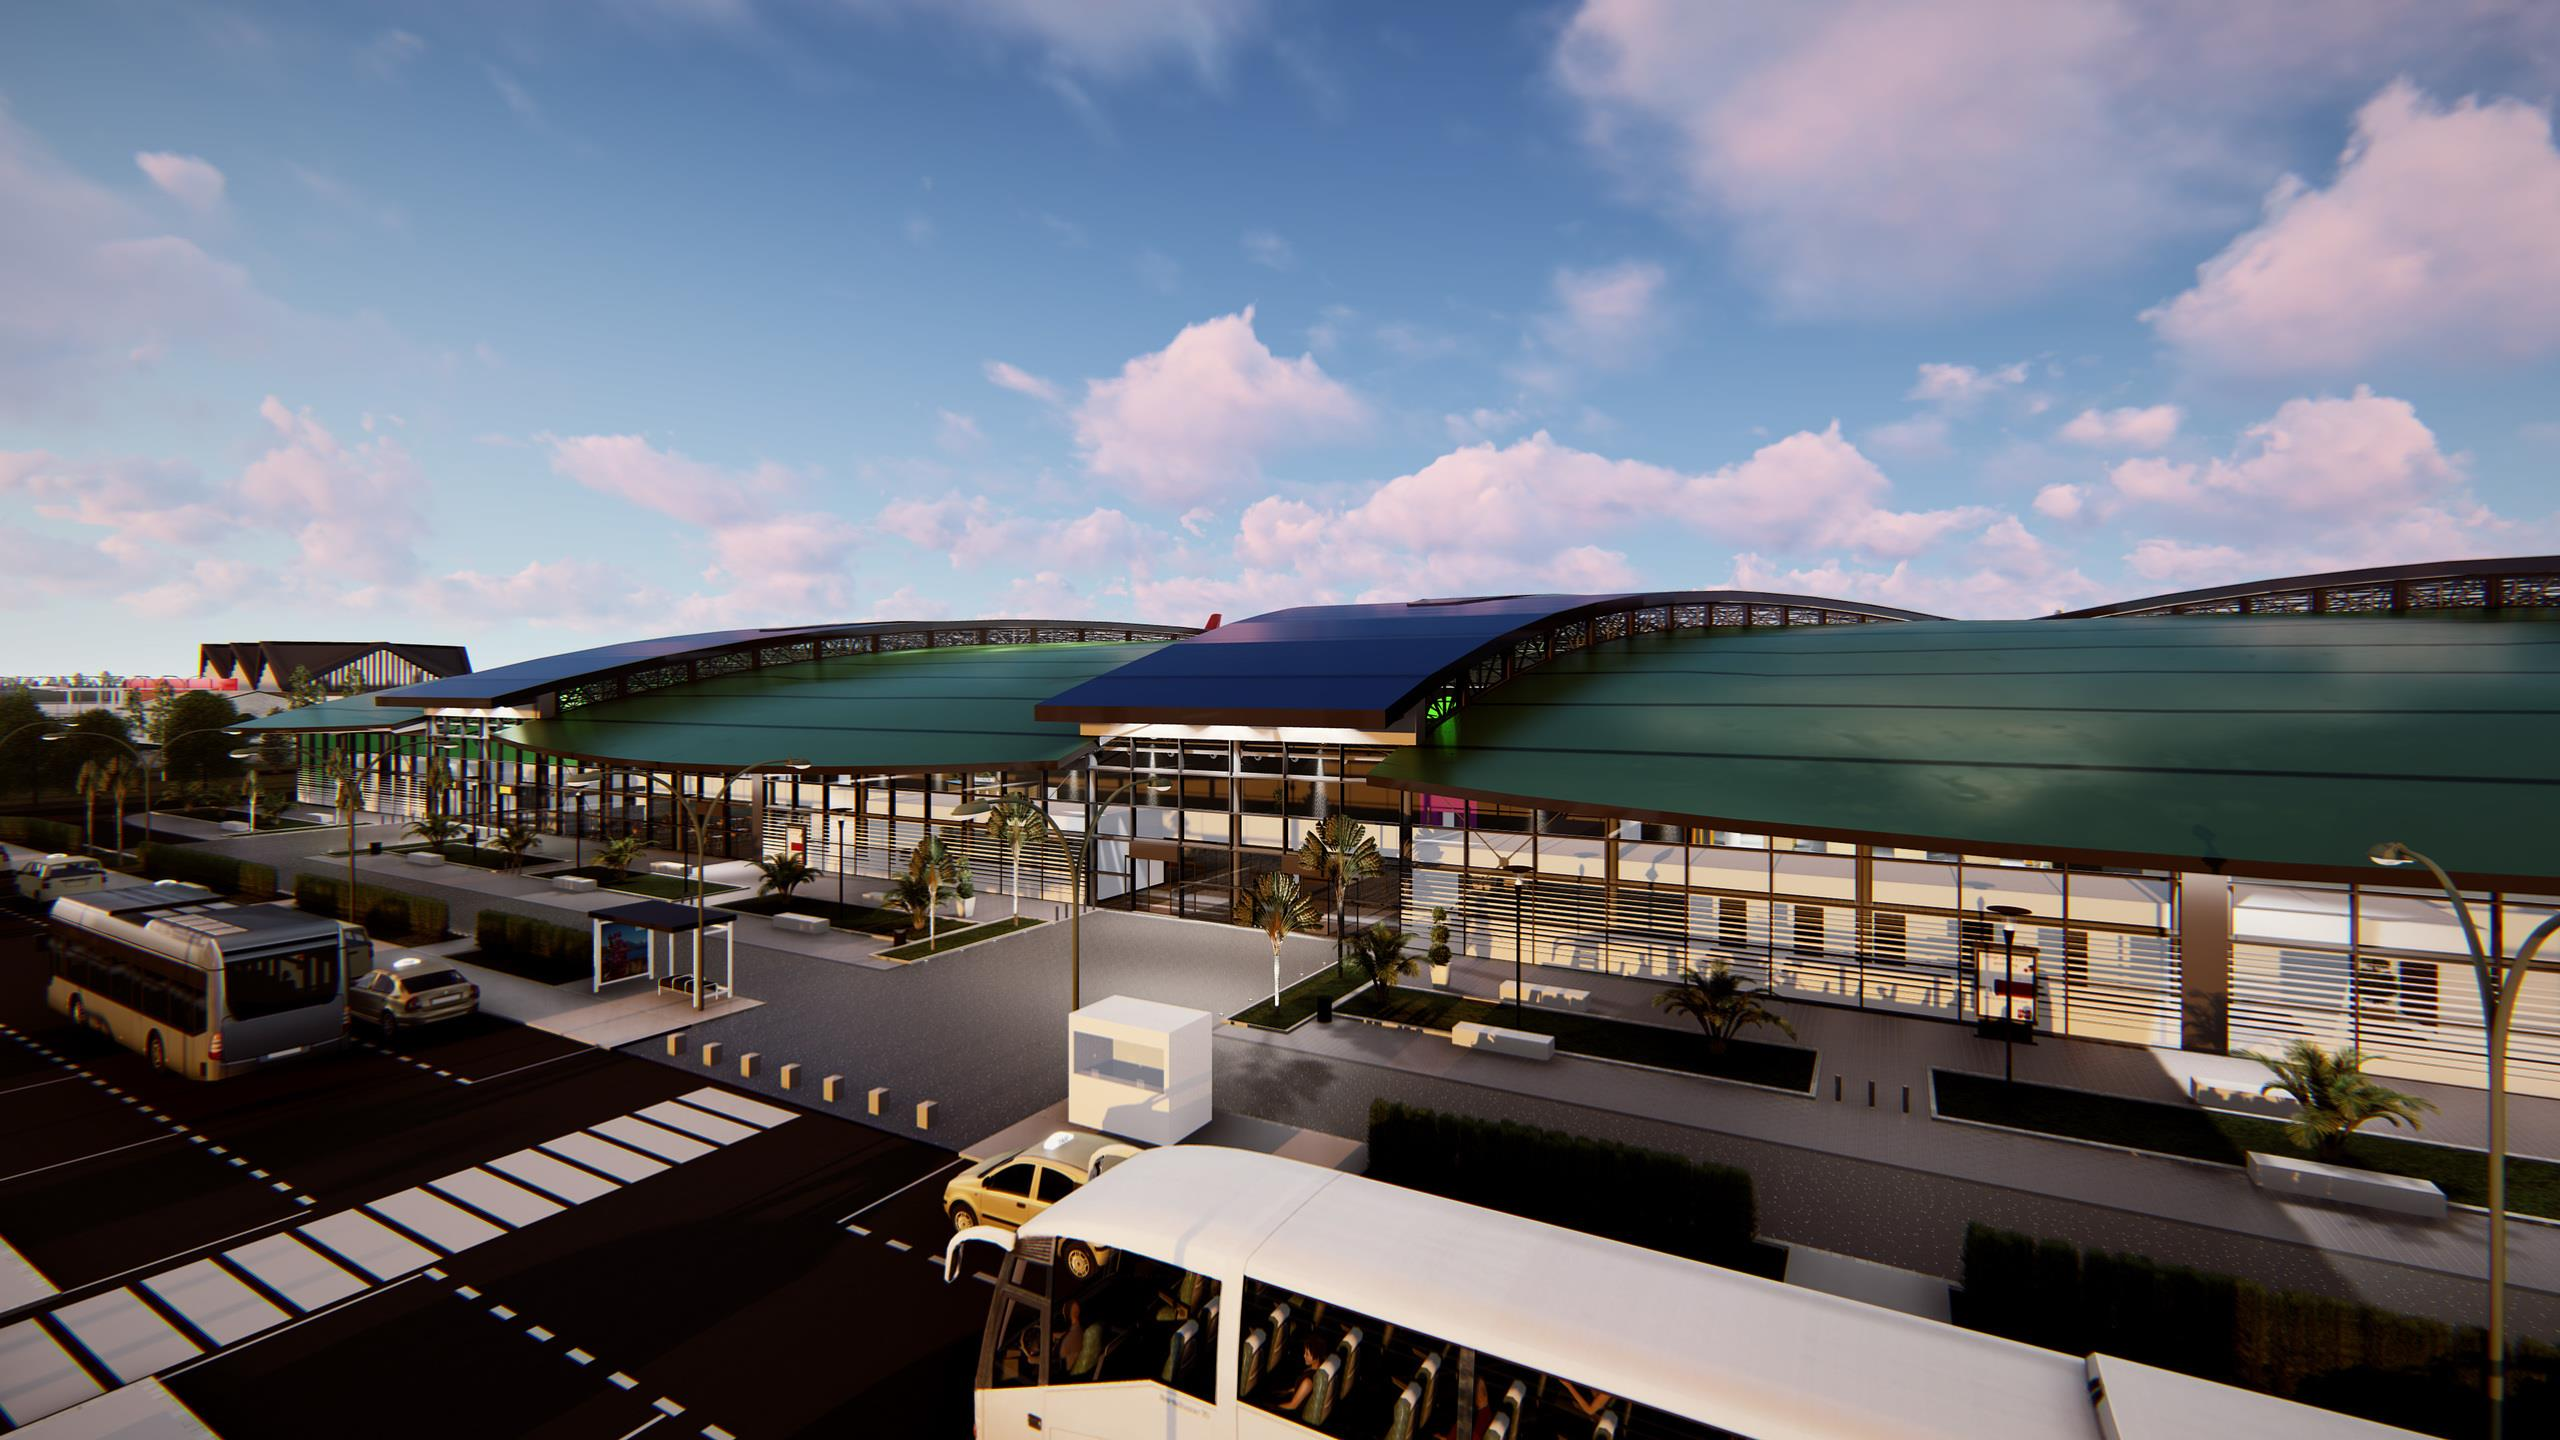 Building information modelling (BIM) image of what the modern airport facilities in Madagascar will look like once complete.